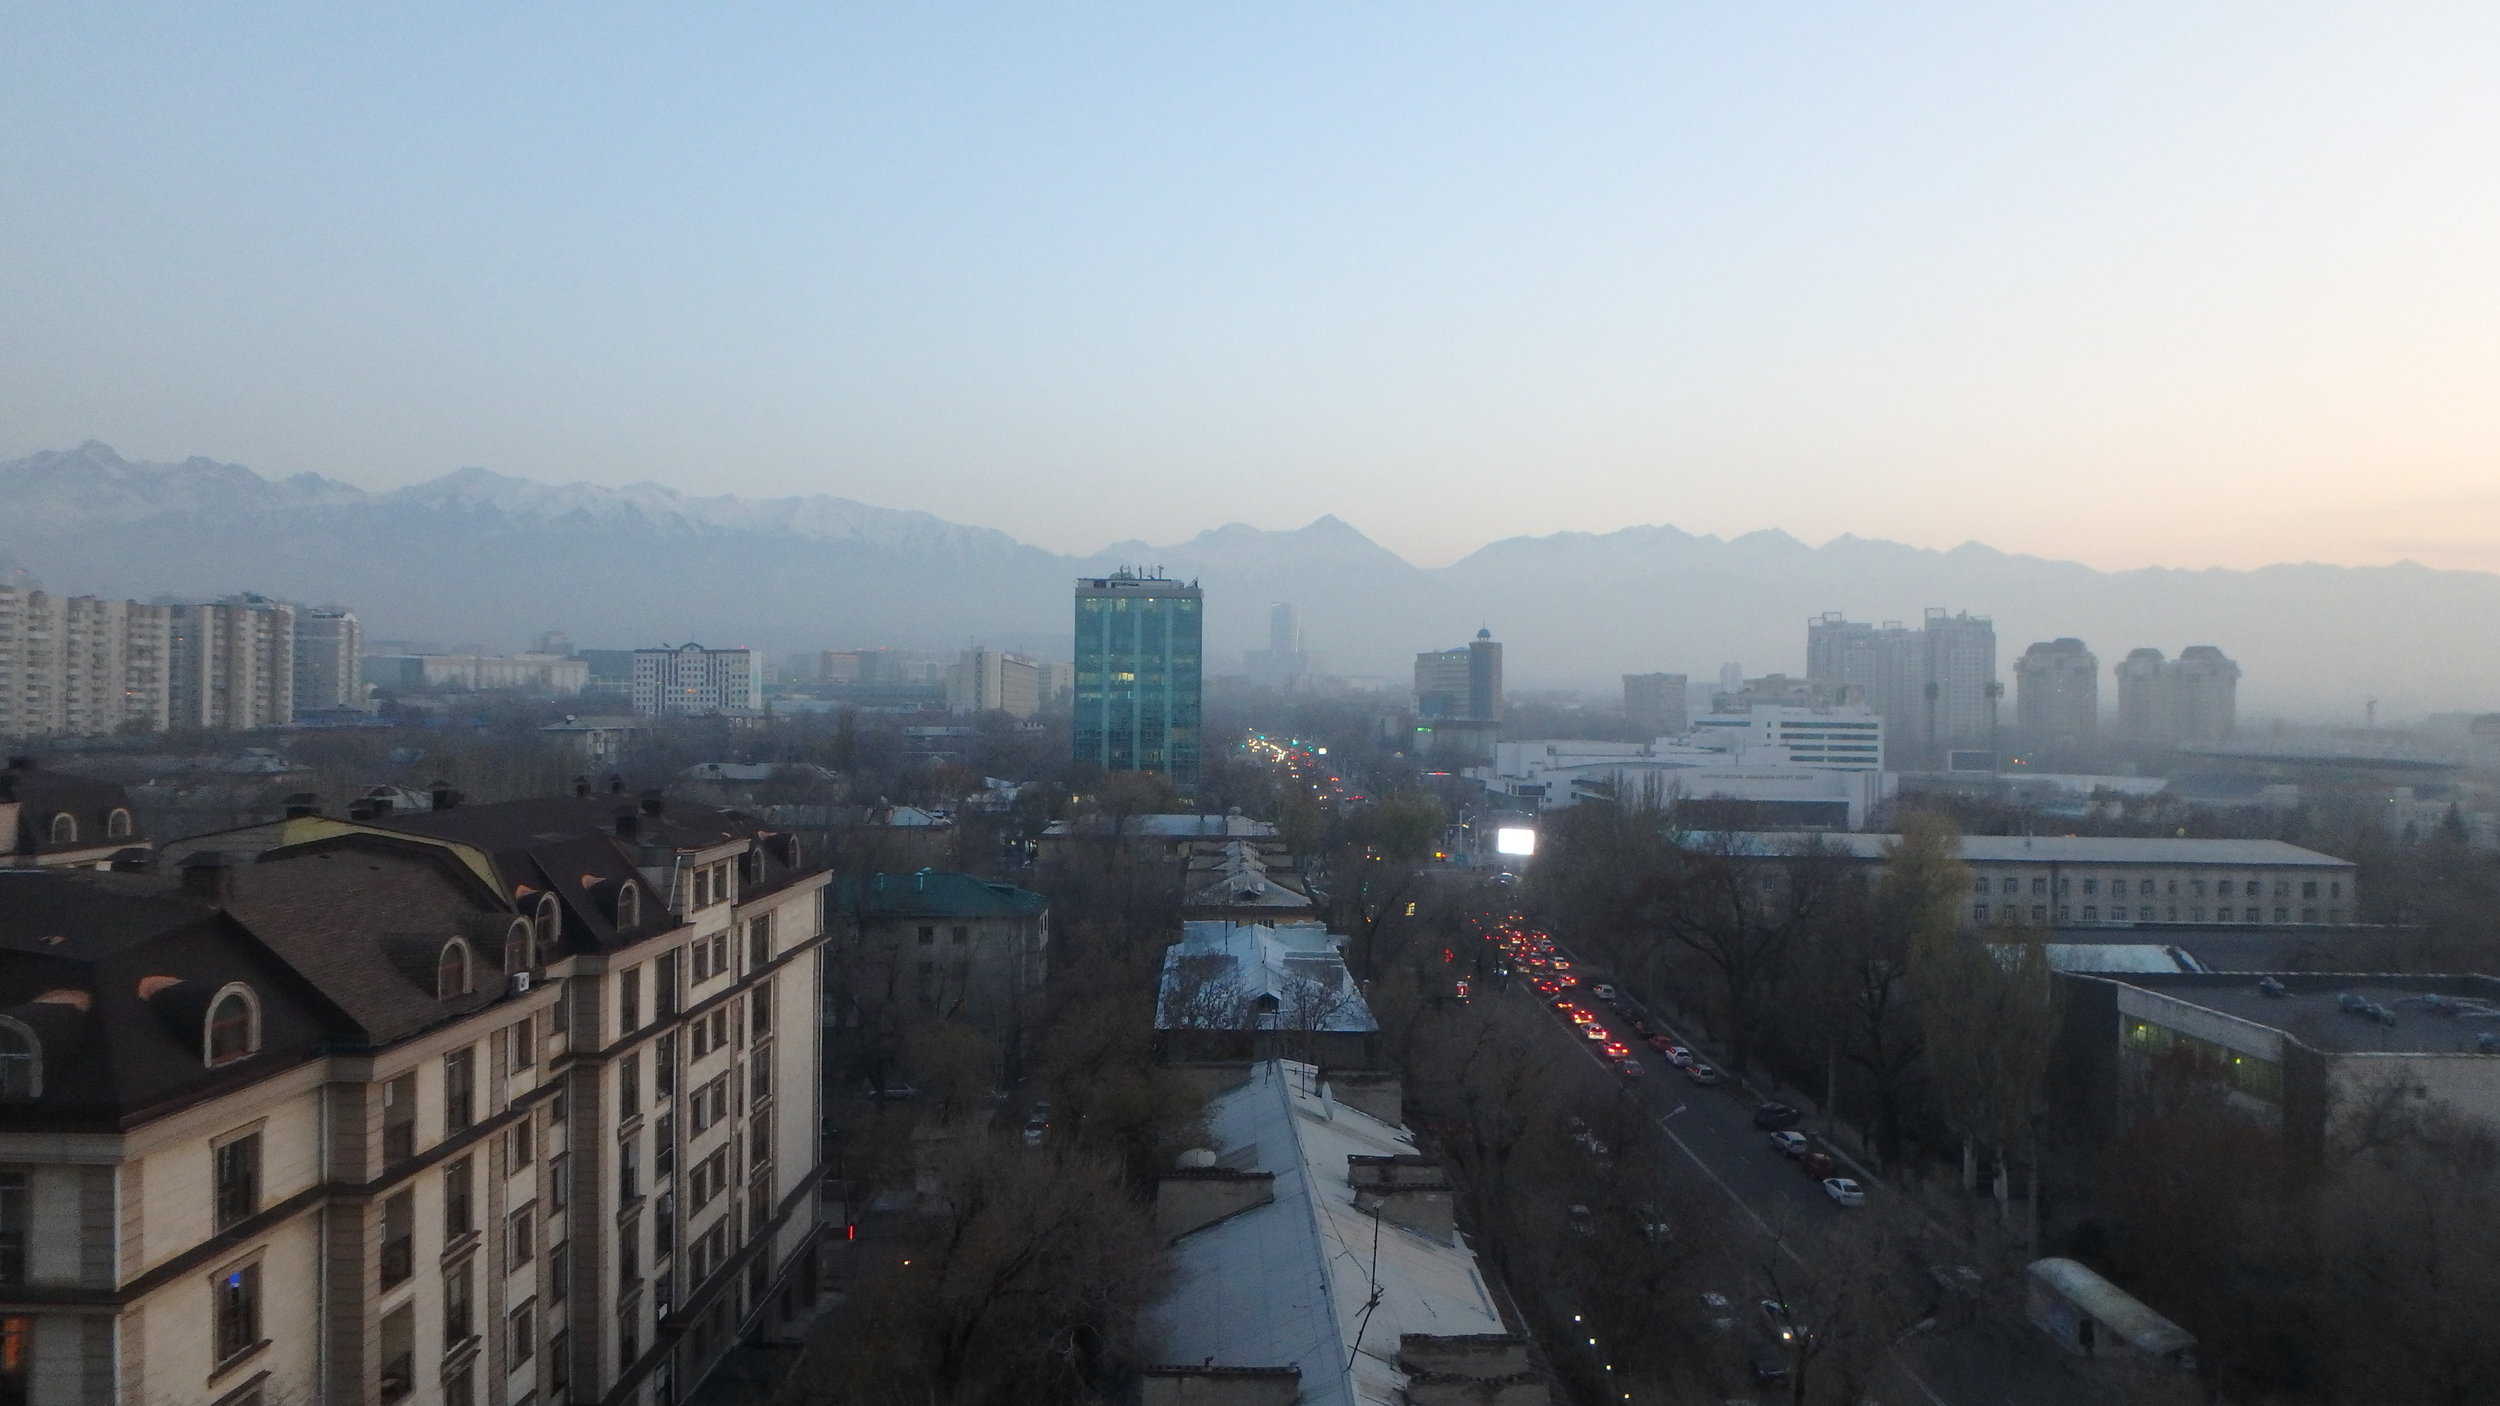 Skyline of Almaty, the old capital of Kazakhstan.